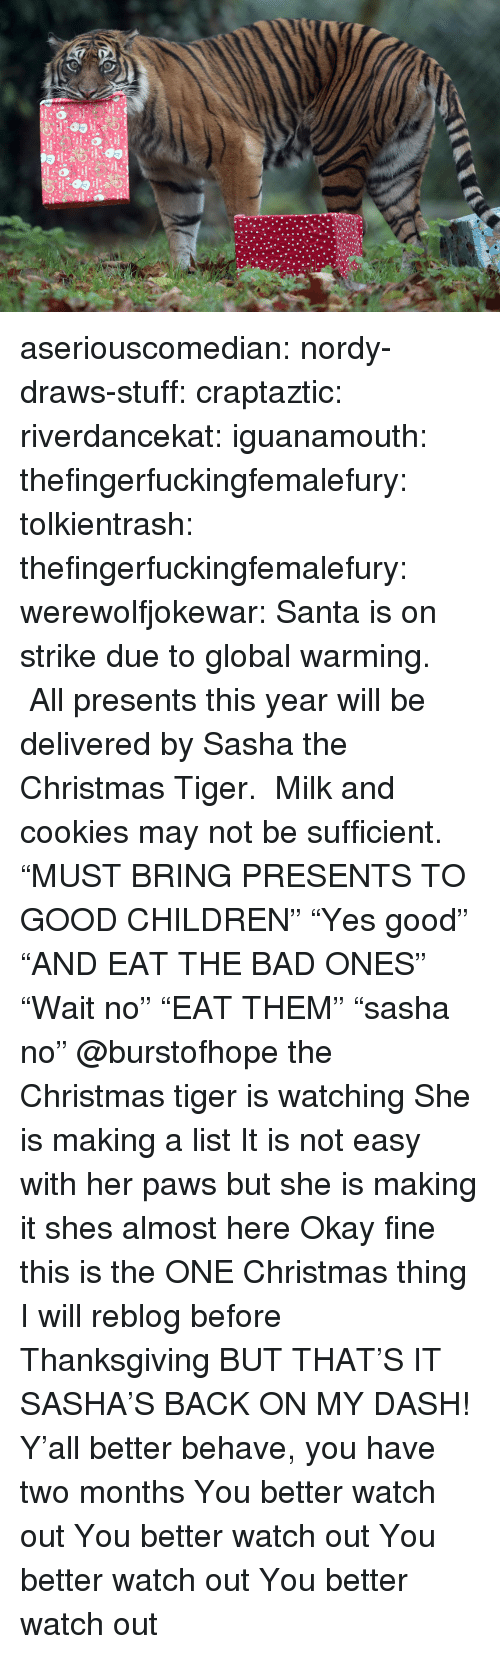 """Bad, Children, and Christmas: aseriouscomedian:  nordy-draws-stuff:   craptaztic:  riverdancekat:  iguanamouth:  thefingerfuckingfemalefury:  tolkientrash:  thefingerfuckingfemalefury:  werewolfjokewar:  Santa is on strike due to global warming. All presents this year will be delivered by Sasha the Christmas Tiger. Milk and cookies may not be sufficient.  """"MUST BRING PRESENTS TO GOOD CHILDREN"""" """"Yes good"""" """"AND EAT THE BAD ONES""""  """"Wait no"""" """"EAT THEM"""" """"sasha no""""   @burstofhope the Christmas tiger is watching  She is making a list  It is not easy with her paws but she is making it   shes almost here   Okay fine this is the ONE Christmas thing I will reblog before Thanksgiving BUT THAT'S IT  SASHA'S BACK ON MY DASH!  Y'all better behave, you have two months   You better watch out You better watch out You better watch out You better watch out"""